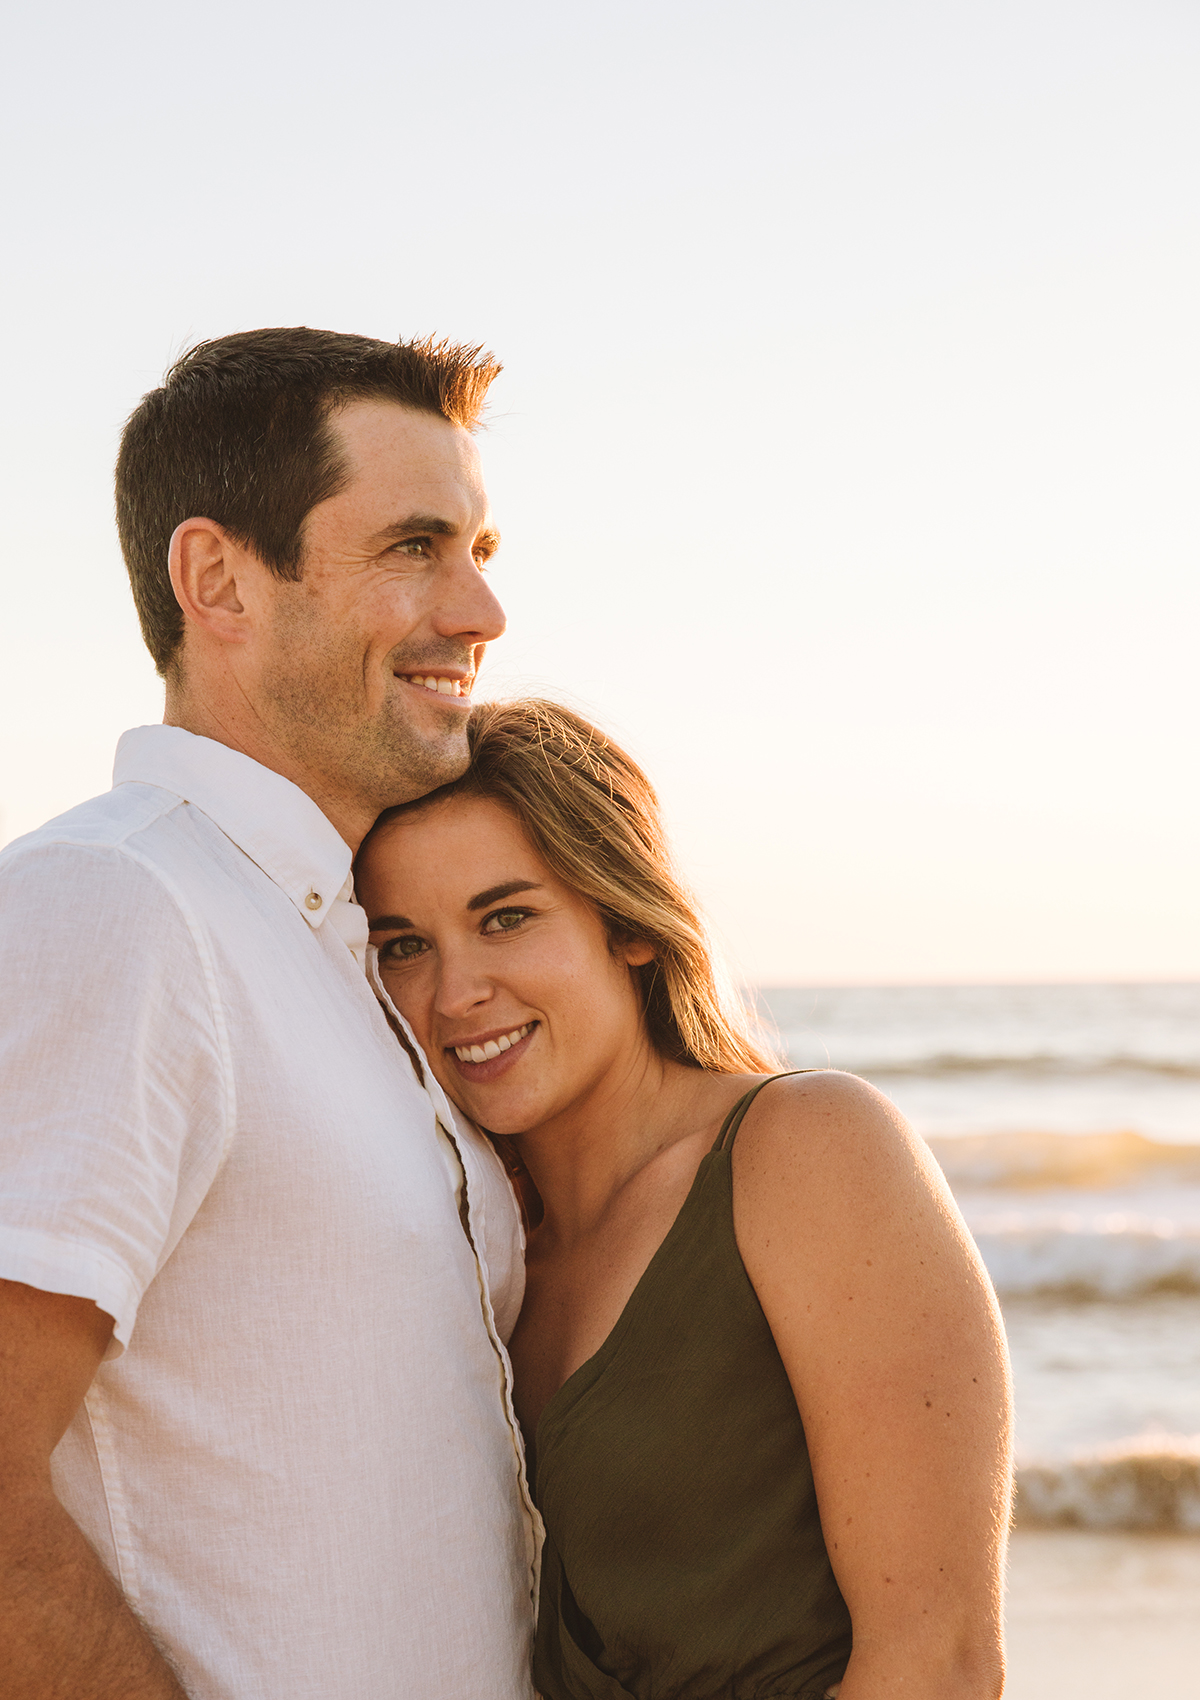 Julep-Belle-Engagement-Photography-Beach-04.jpg